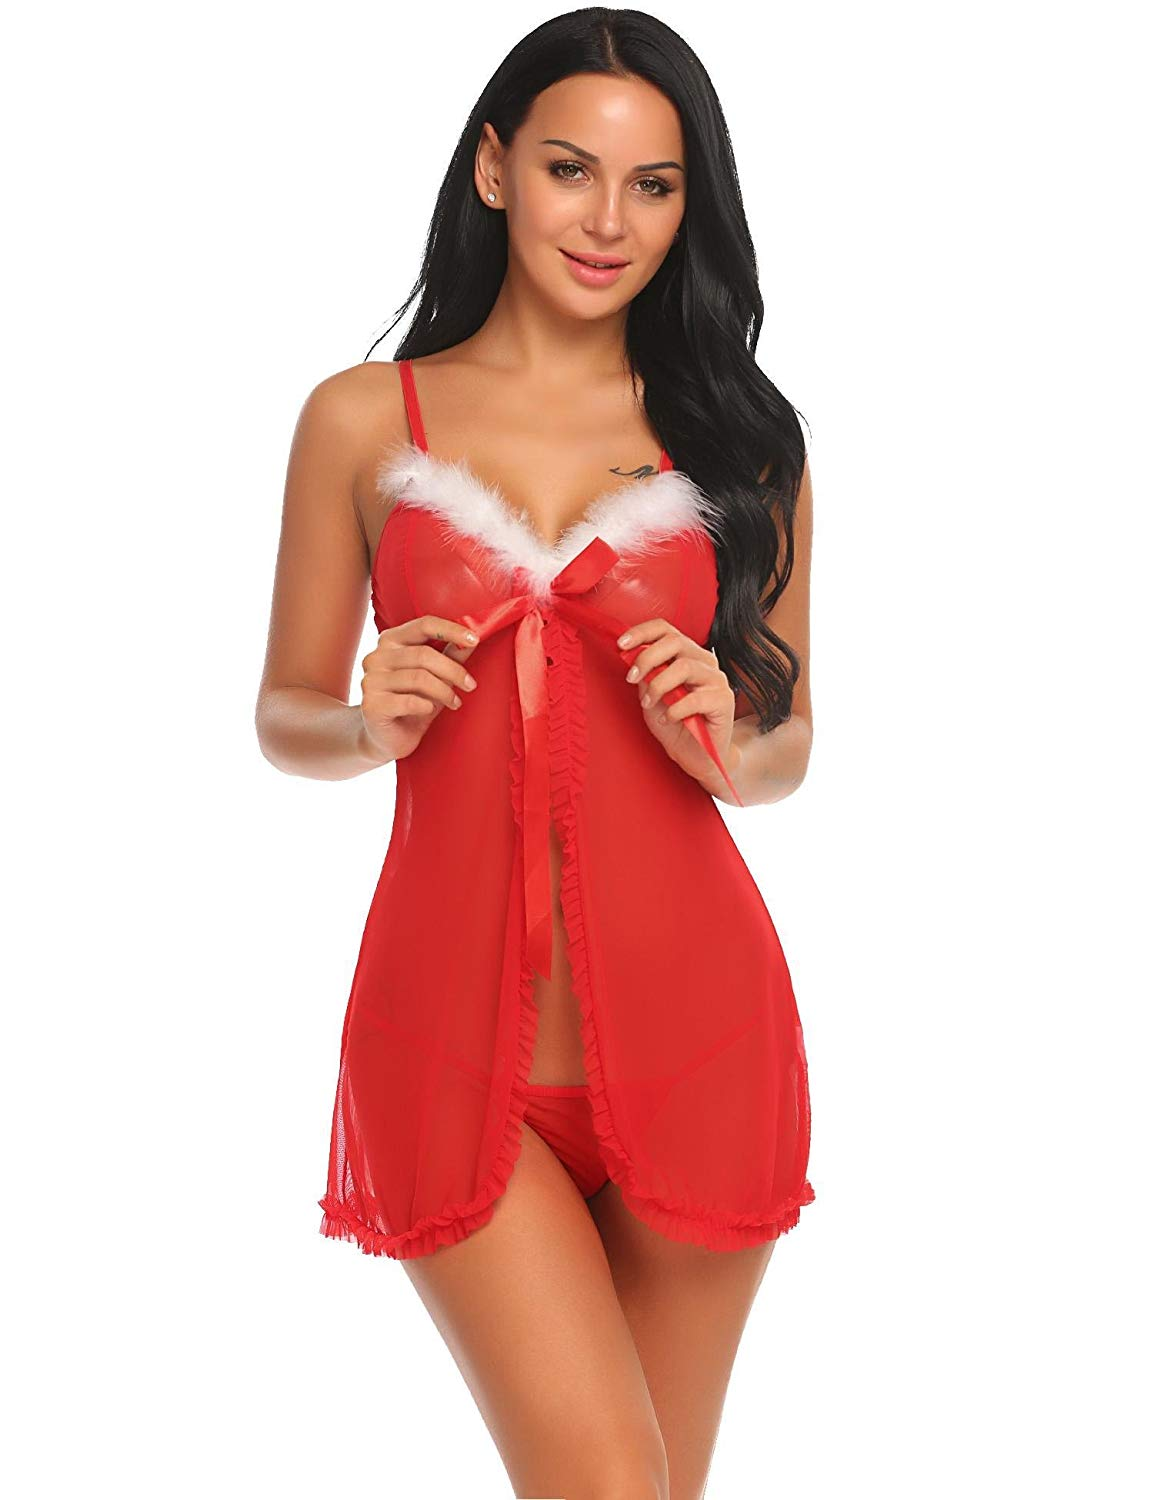 08277abe4ea Get Quotations · Hufcor Ladies Bikini Sexy Lingerie Underwear Party Fancy Santa  Dress Xmas Claus Costume Outfit